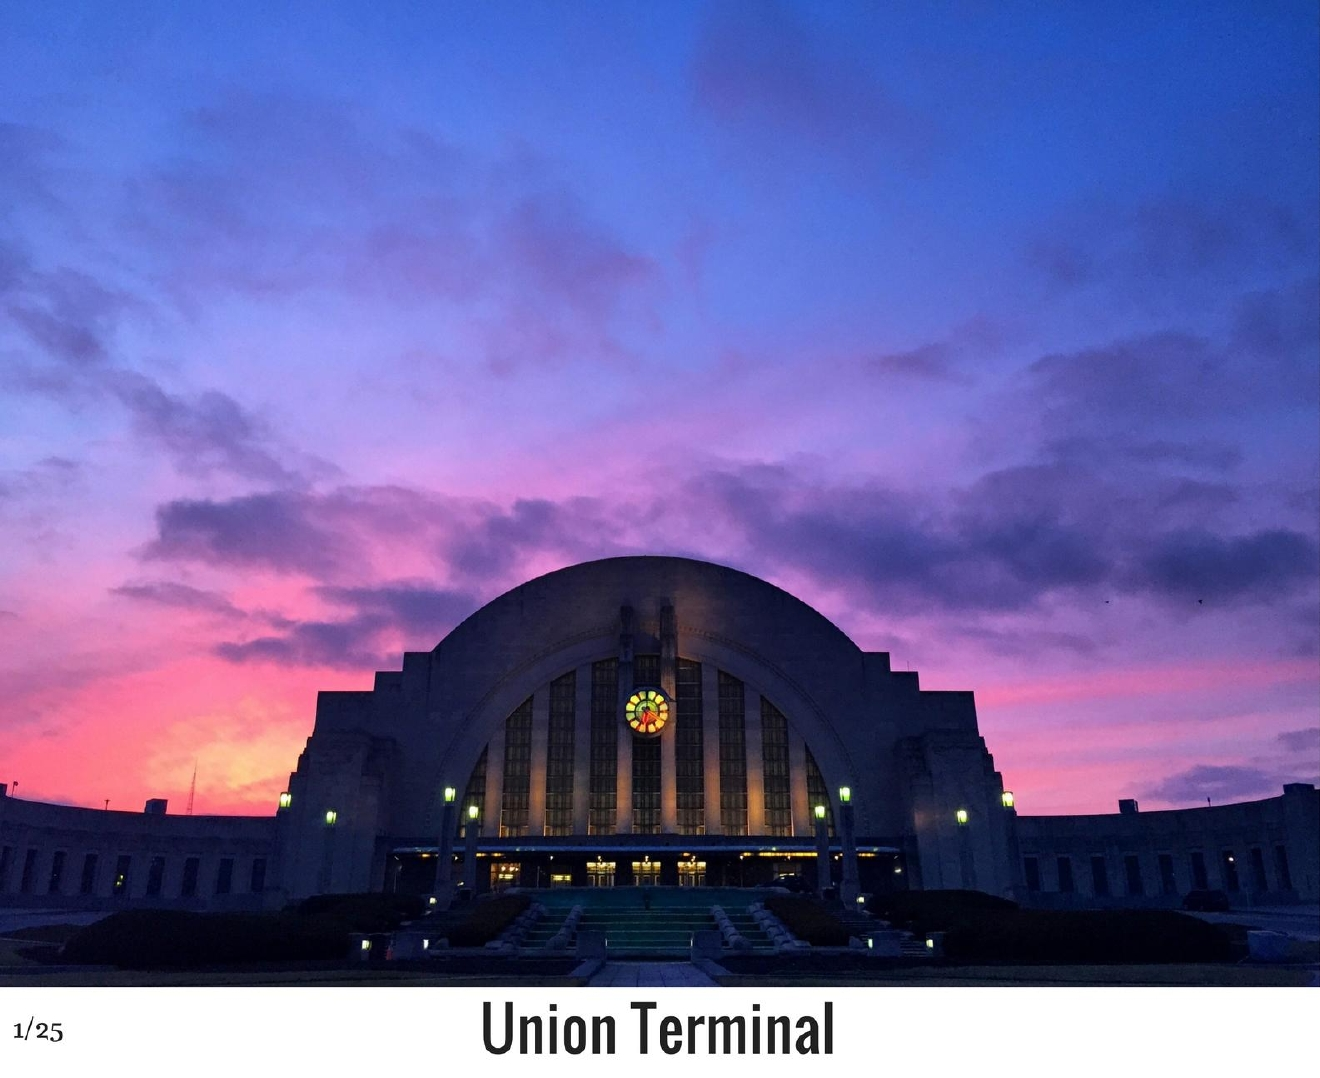 WHAT: Union Terminal / WHERE: 301 Western Avenue, Queensgate 45203 / Image: Maria Dehne / Published: 10.27.16